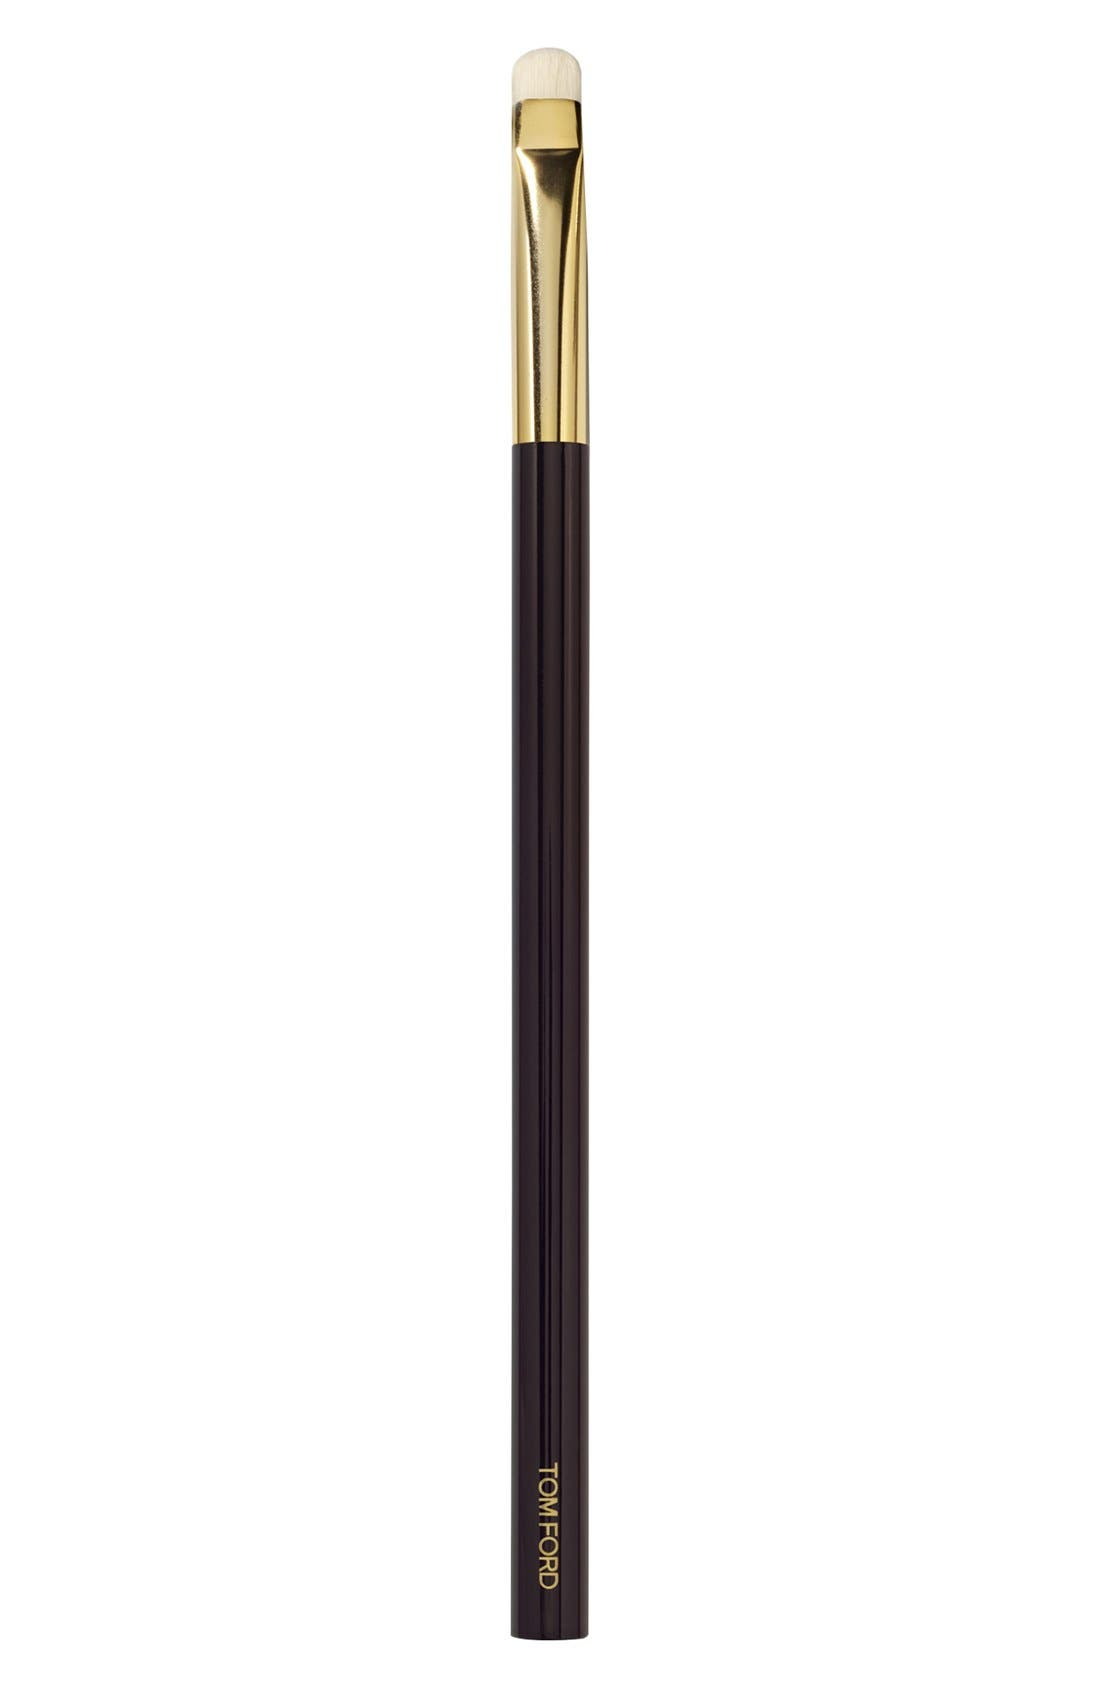 Eyeliner/Definer Brush 15,                             Main thumbnail 1, color,                             000